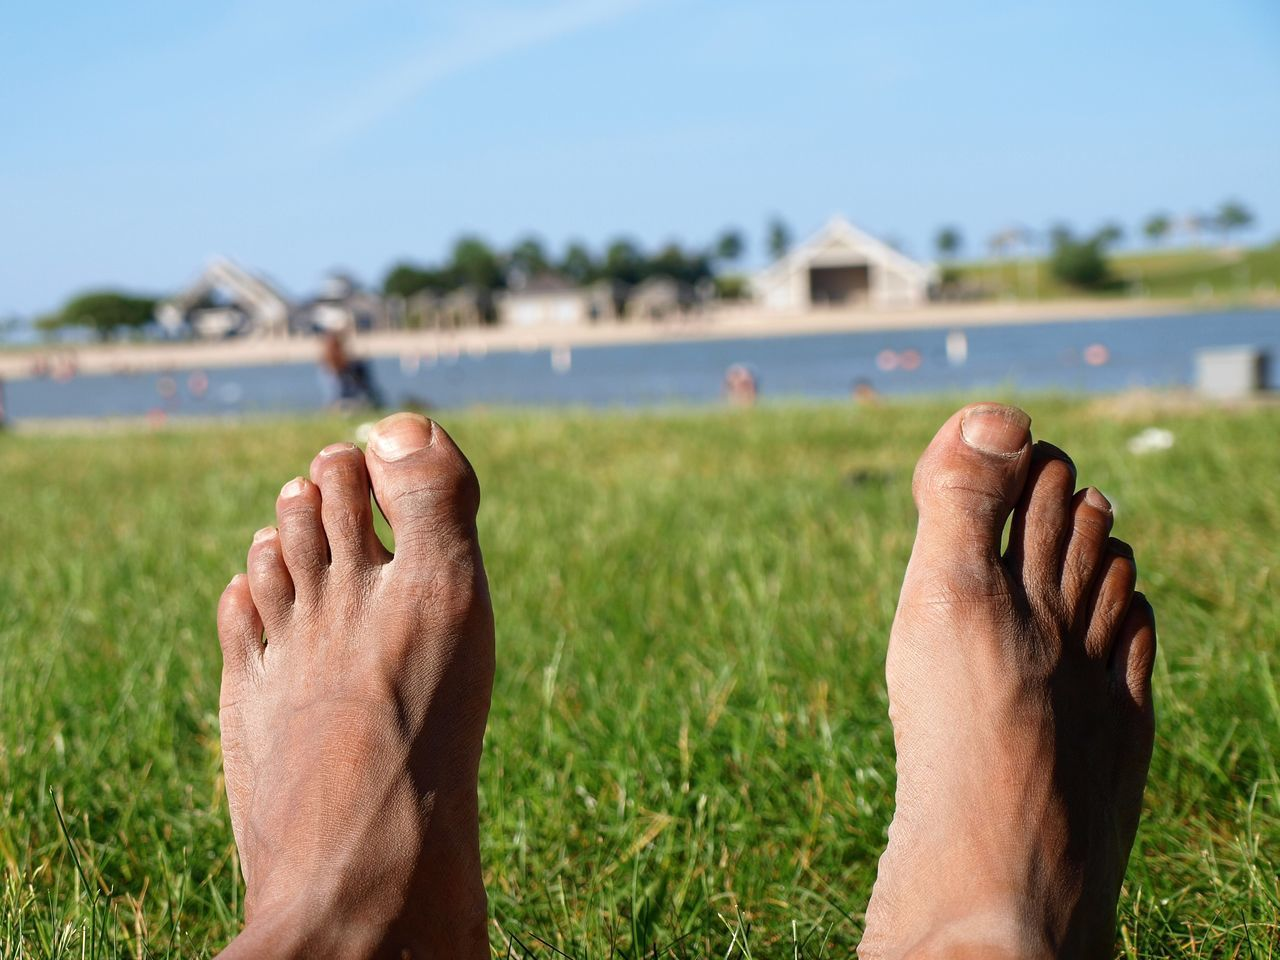 barefoot, human foot, focus on foreground, human body part, real people, human leg, low section, grass, personal perspective, leisure activity, day, relaxation, outdoors, sole of foot, one person, men, water, close-up, lifestyles, vacations, human hand, sky, people